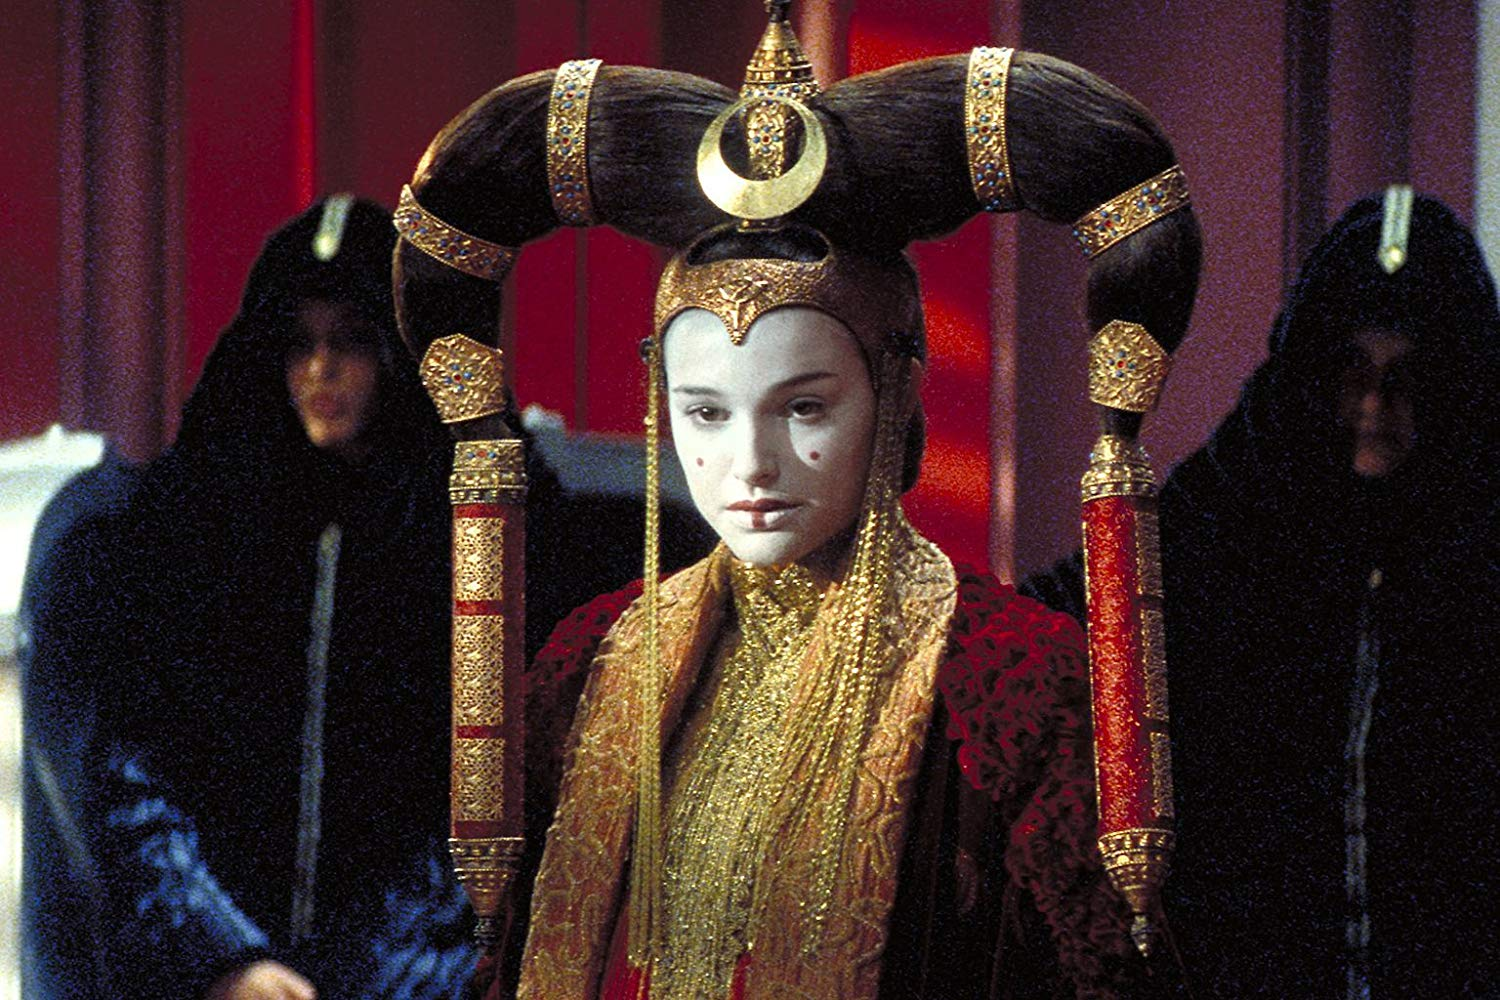 Queen Amidala (Natalie Portman) in Star Wars Episode I The Phantom Menace (1999)